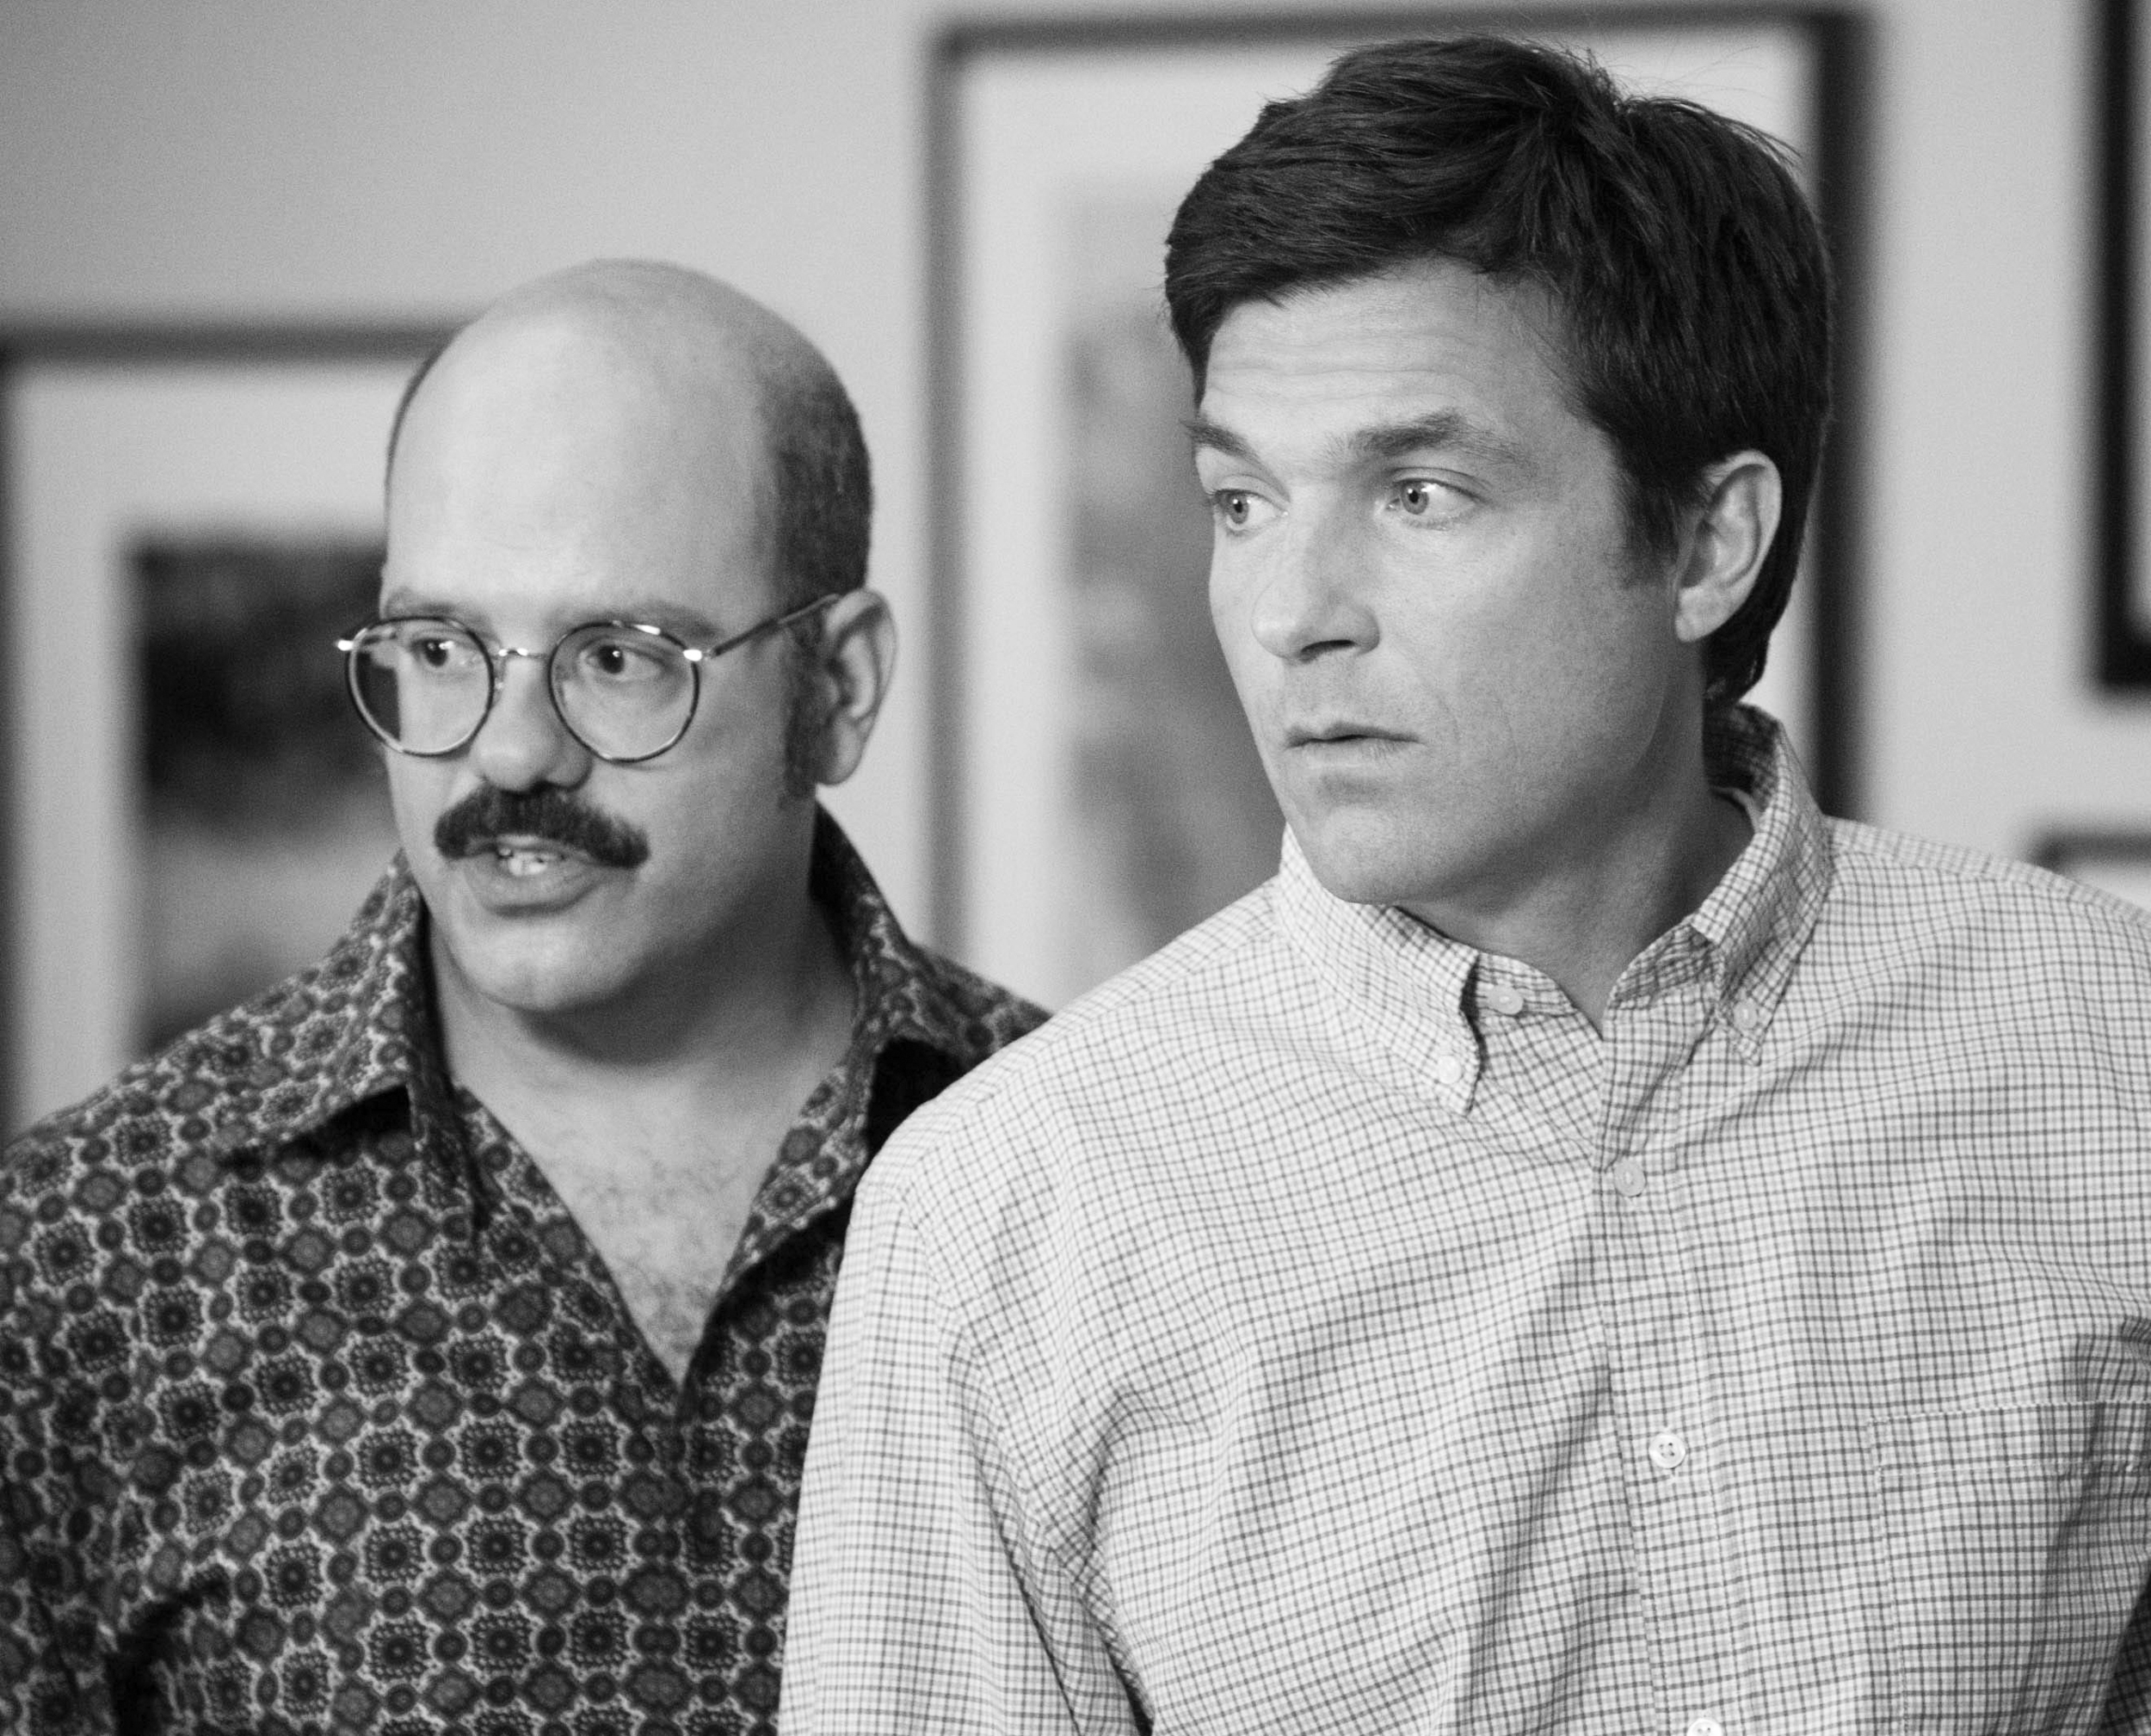 """vulture.com    David Cross and Jason Bateman return as Tobias Fünke and Michael Bluth in the Emmy-nominated fourth season of """"Arrested Development"""" on Netflix, much to the delight of fans. """"Arrested"""" is one of the series on Netflix that has earned an Emmy-nomination this year, including shows like """"House of Cards"""" and """"Hemlock Grove."""""""